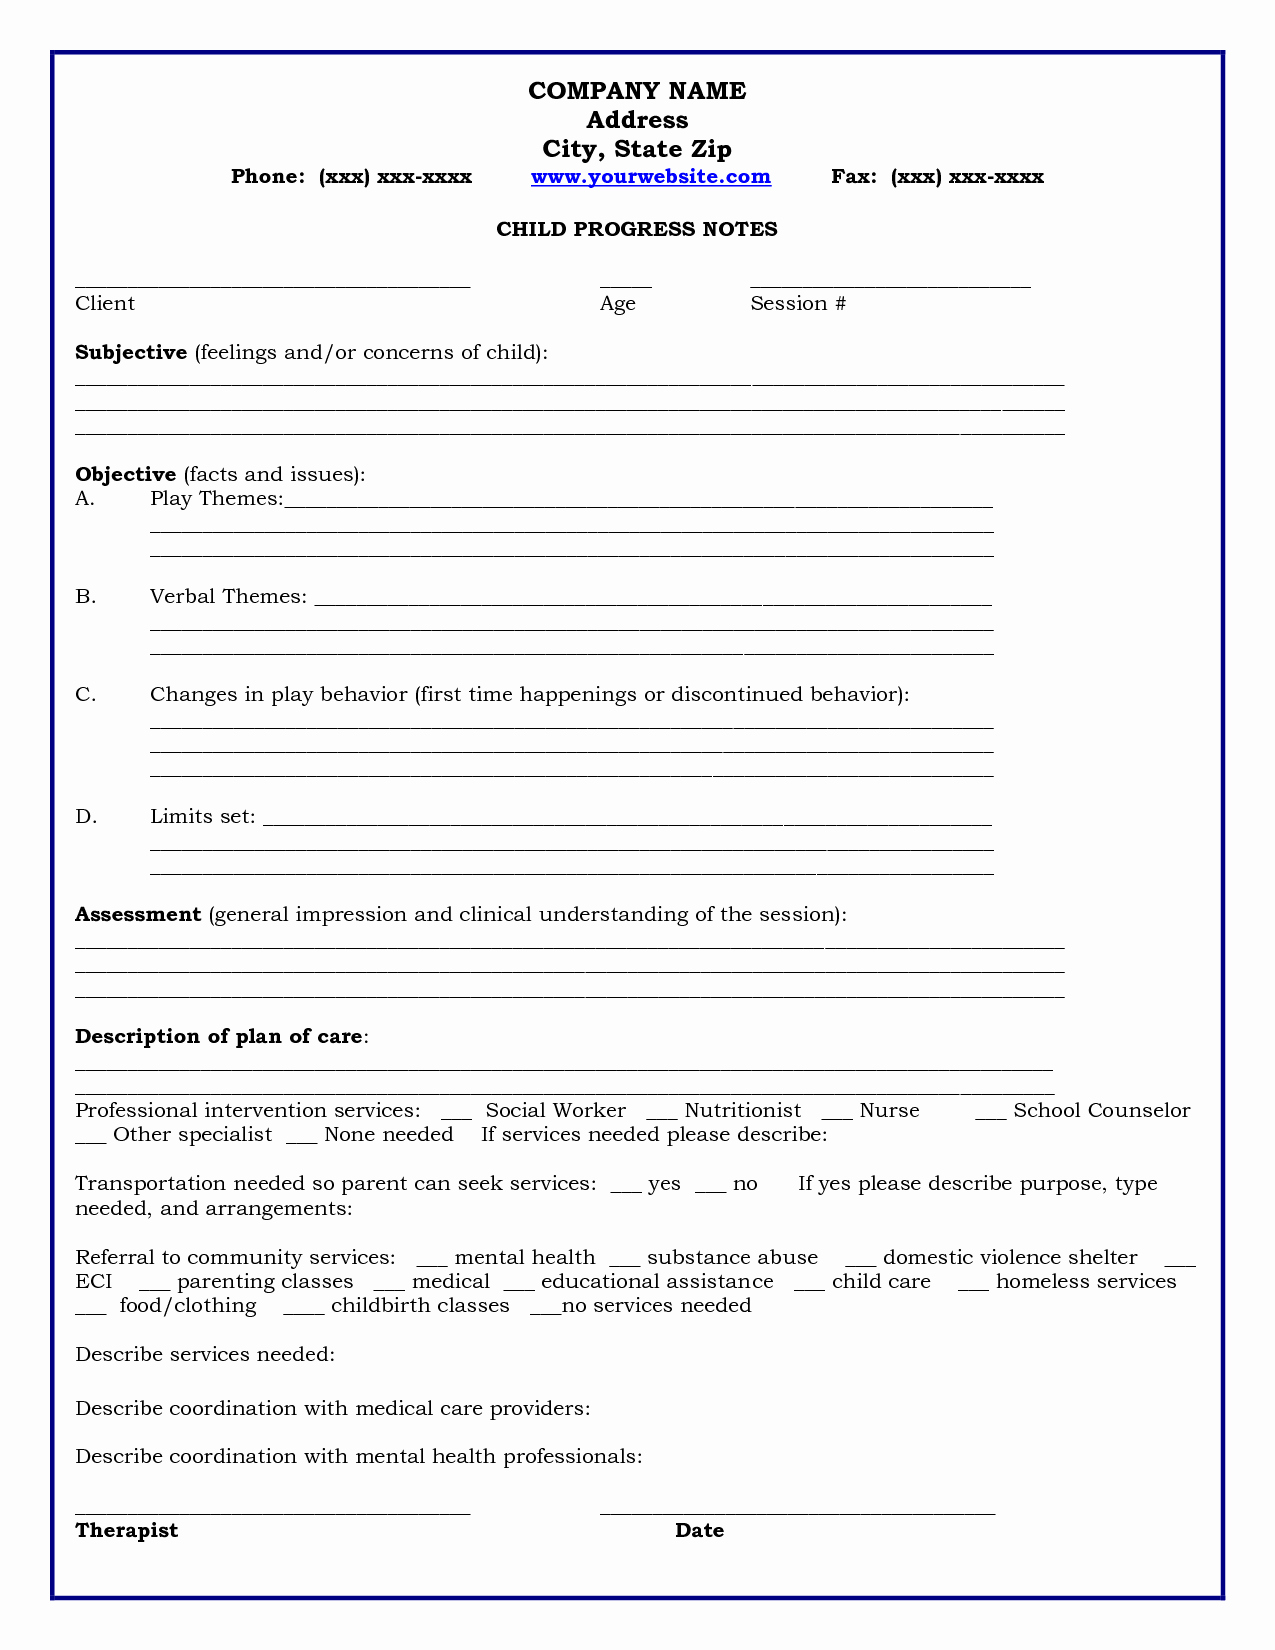 Counseling Progress Note Template Inspirational Home Child Progress Notes Medicaid Child Progress